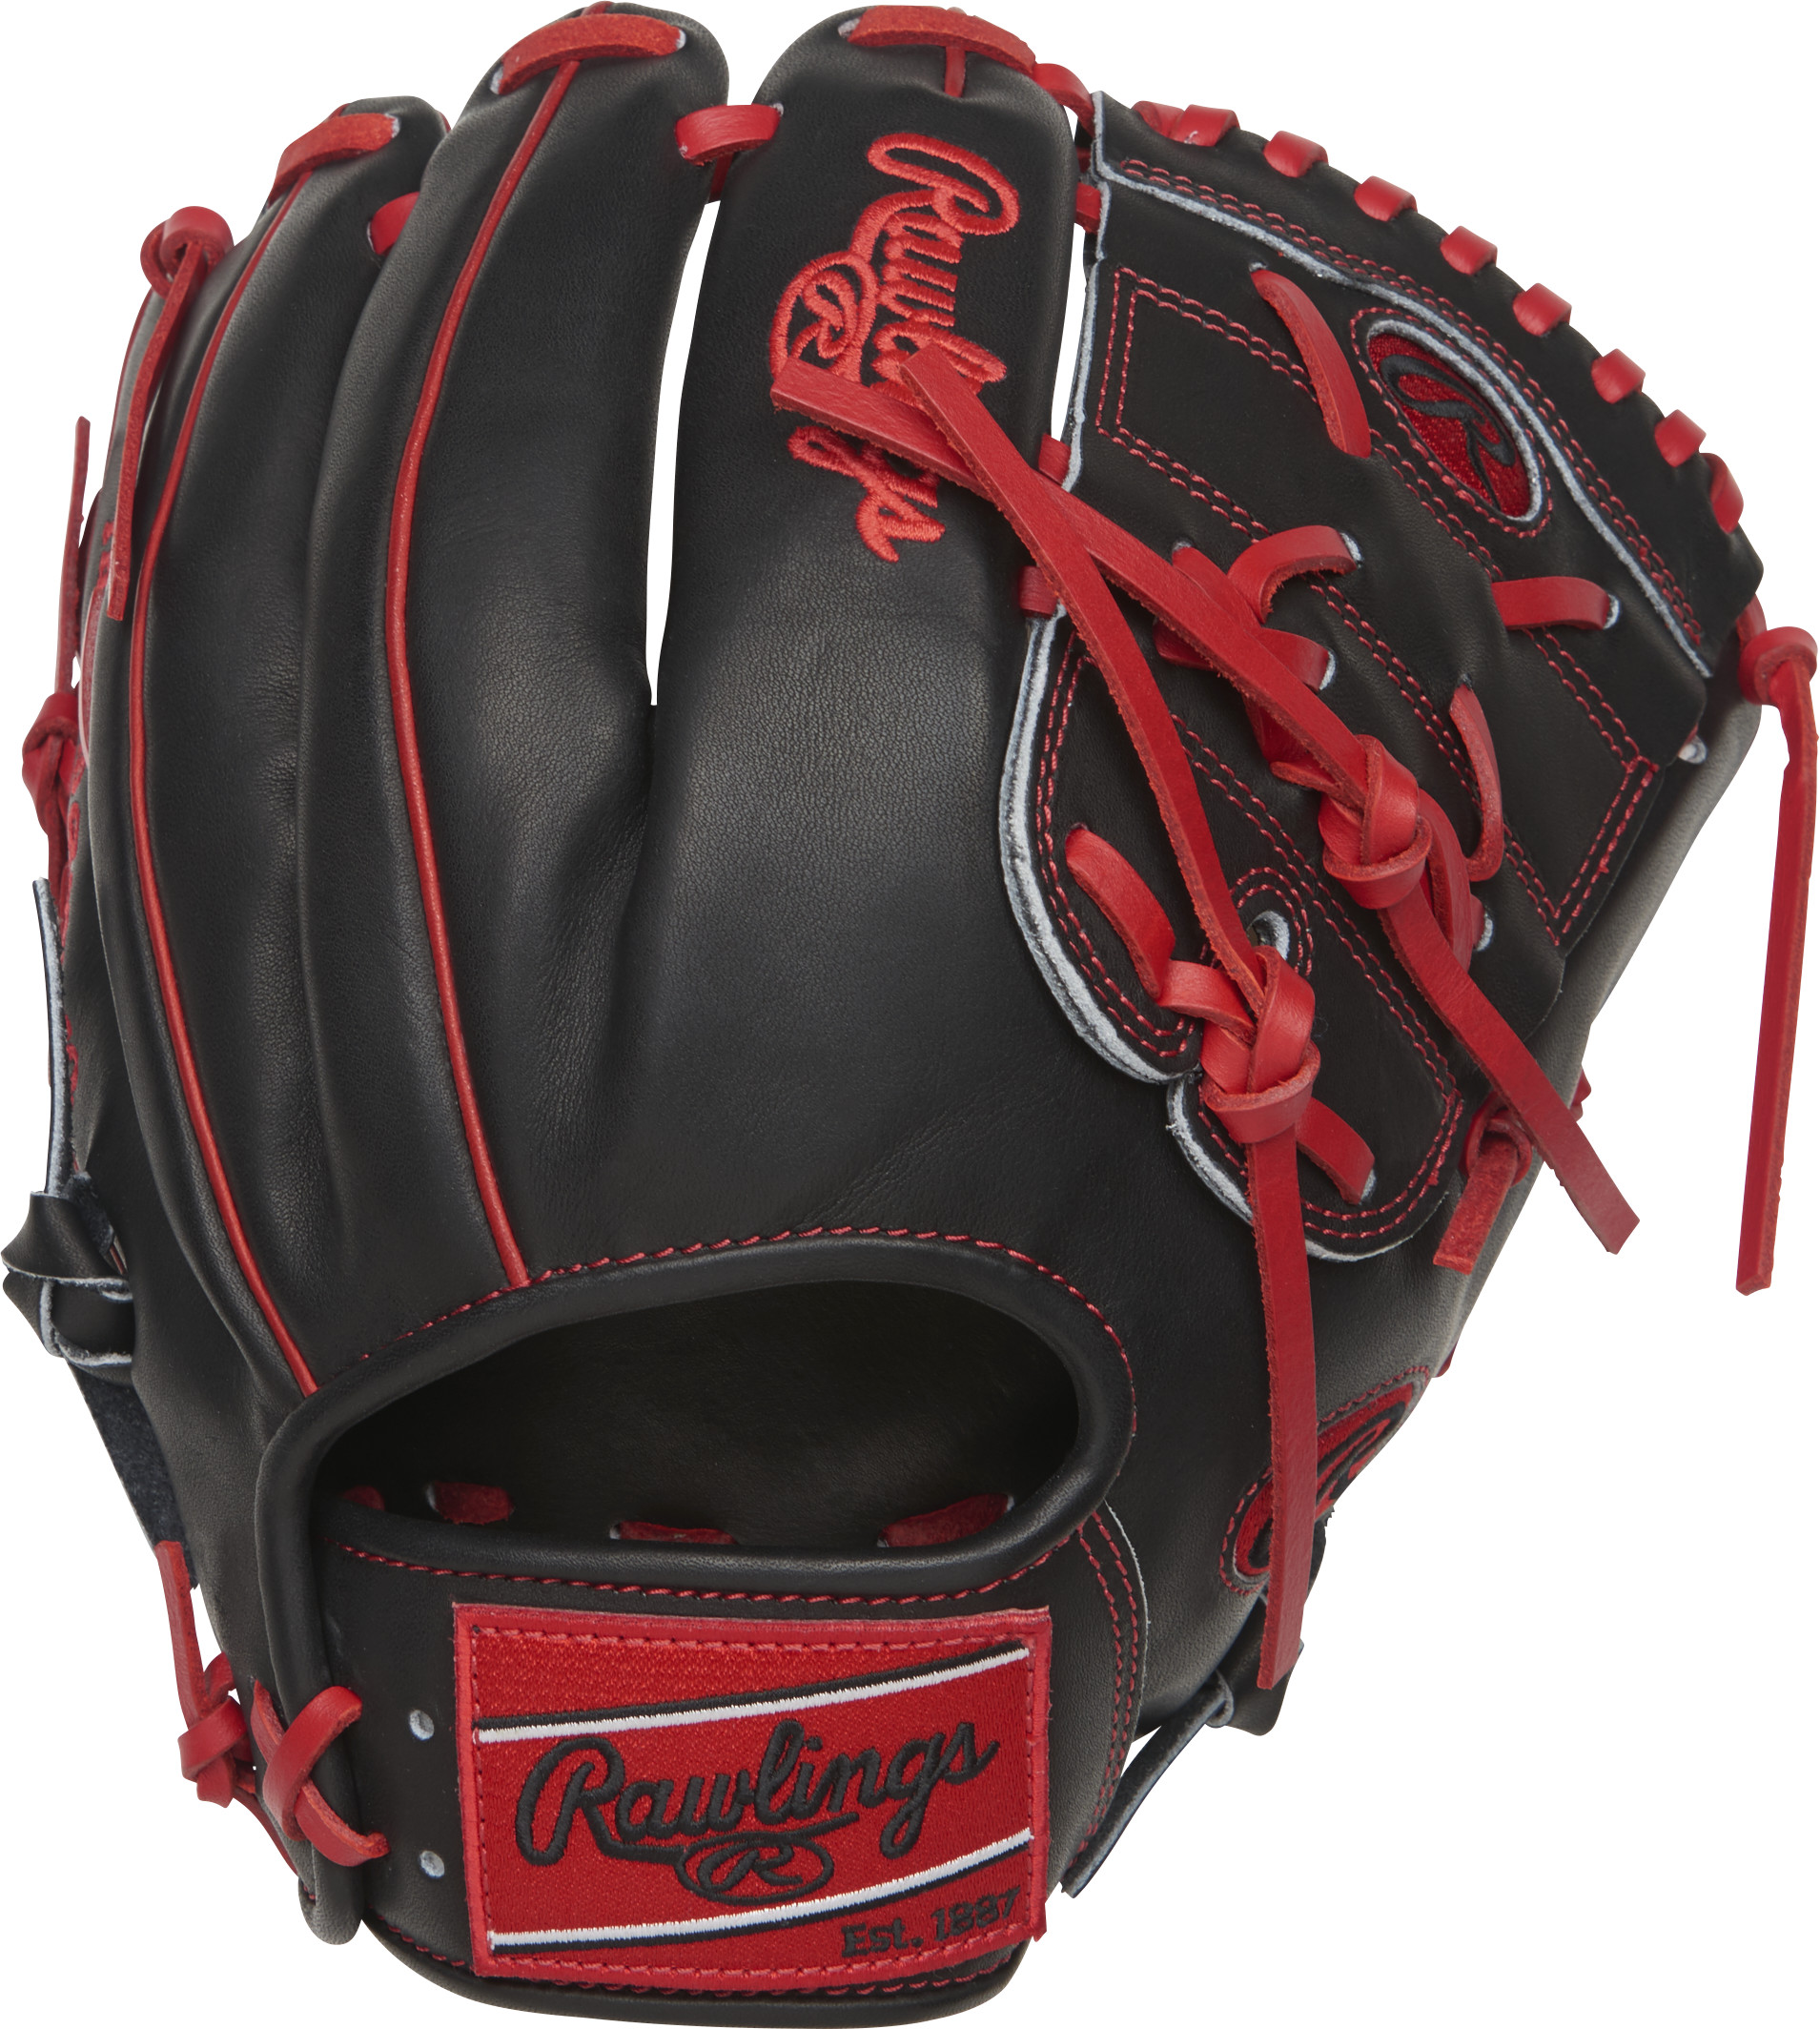 http://www.bestbatdeals.com/images/gloves/rawlings/PRO205-9CBS-2.jpg